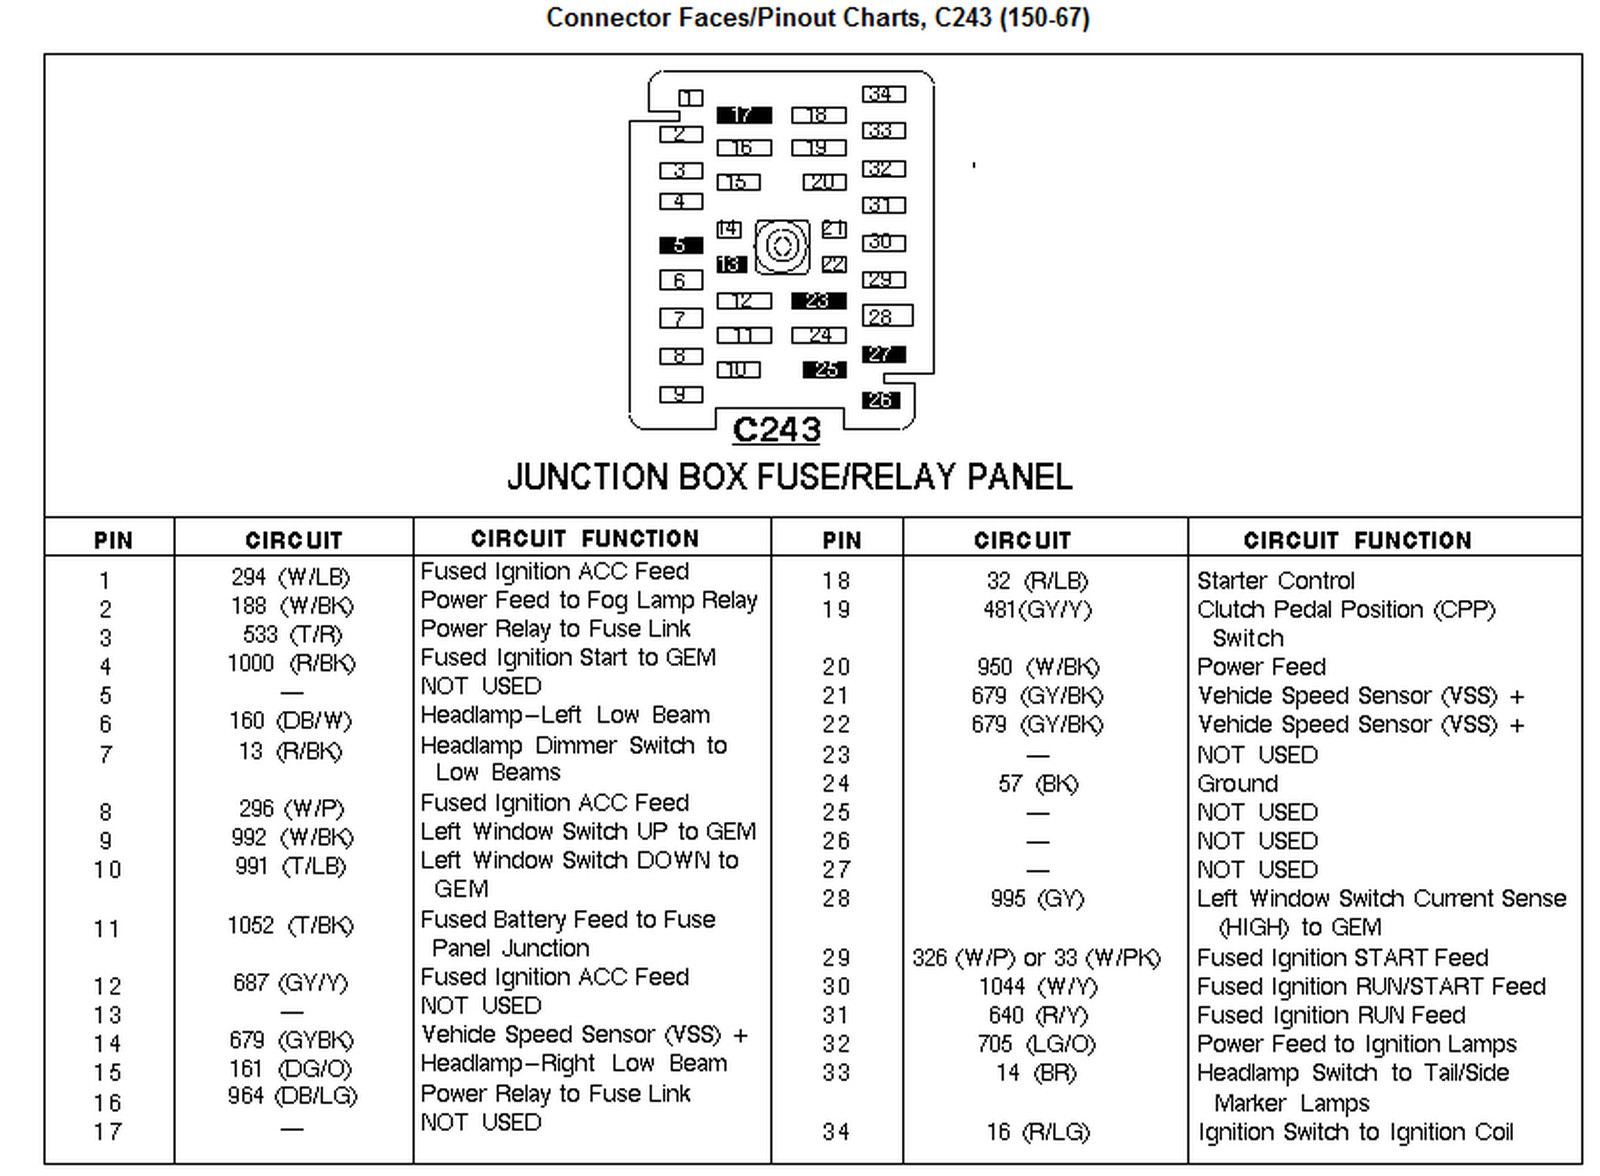 2004 F150 4Wd Fuse Box Diagram | Manual E-Books - 2014 Ford F150 Trailer Wiring Diagram